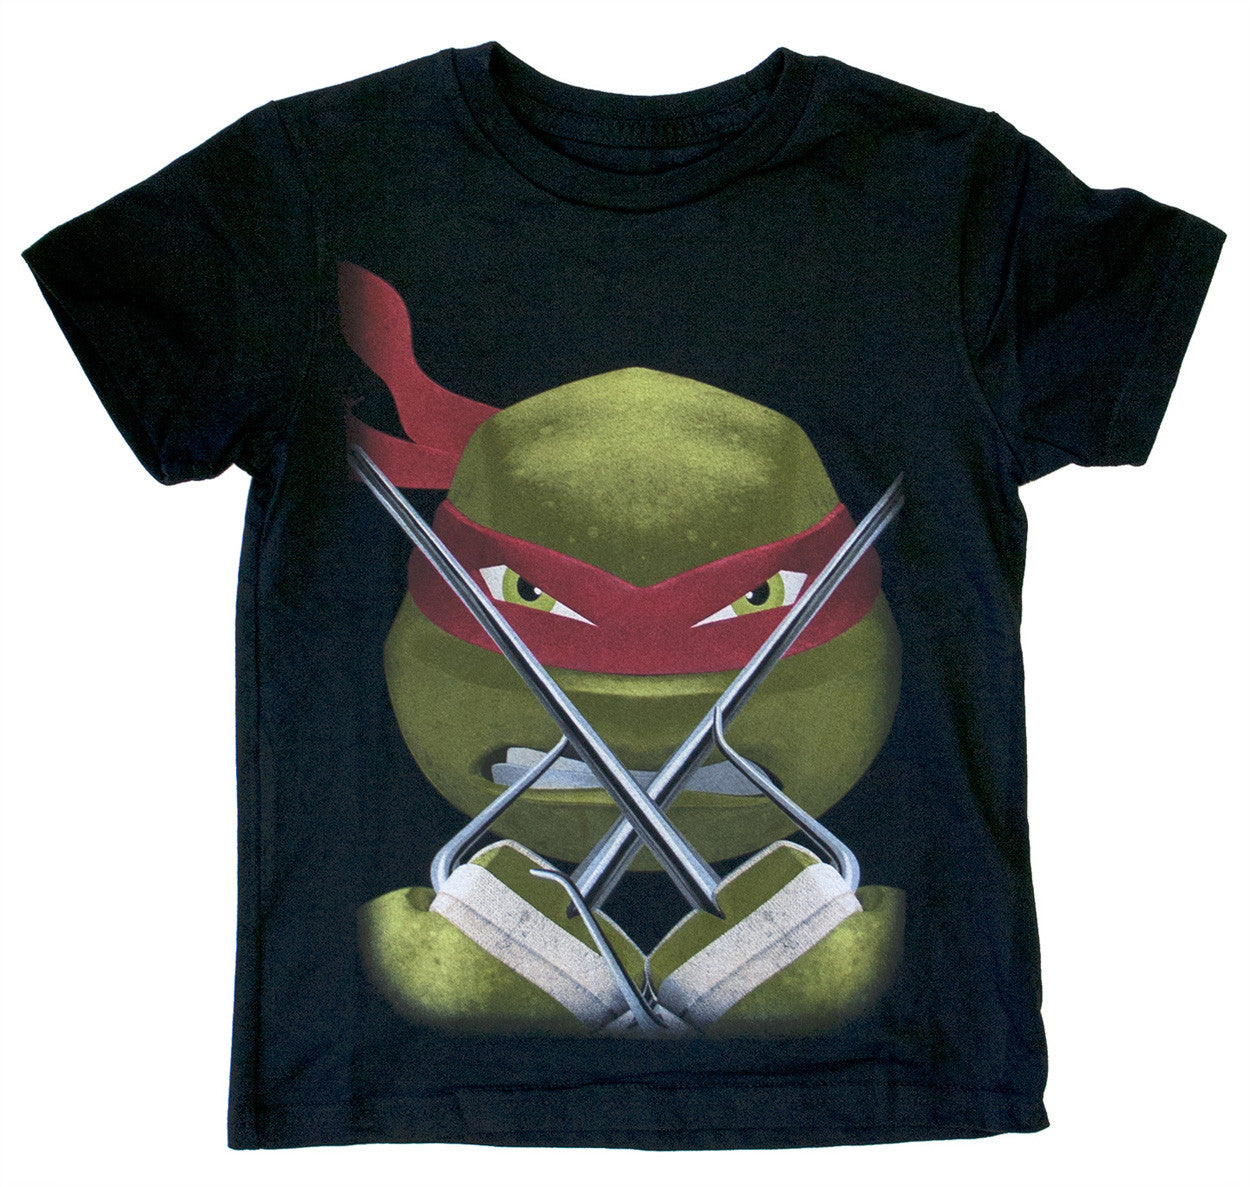 Teenage Mutant Ninja Turtles In Your Face t-shirt